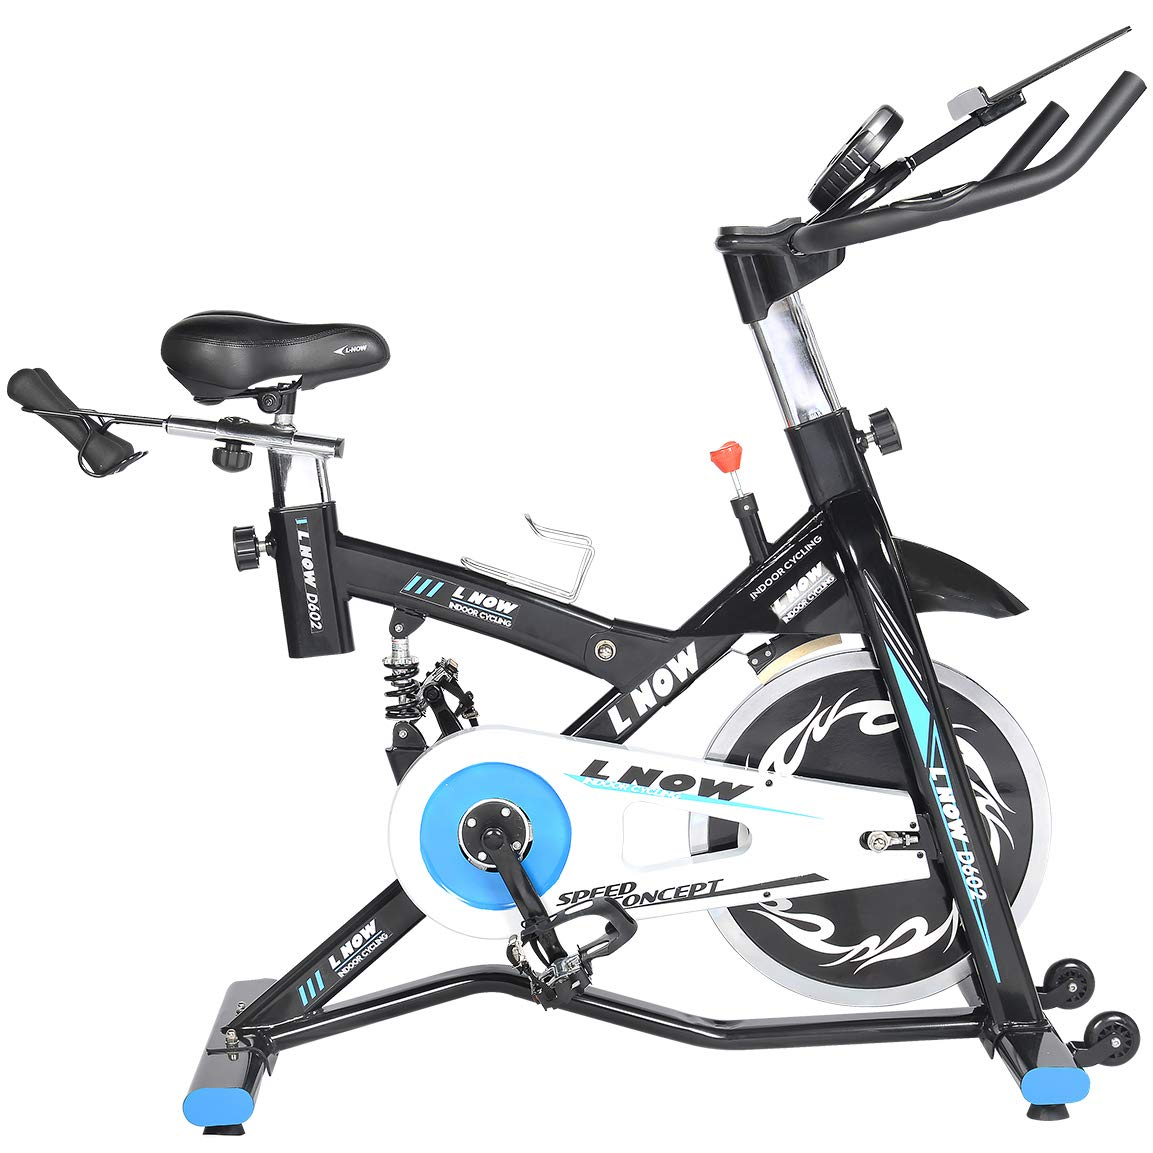 L NOW Indoor Exercise Bike Indoor Cycling Bike Stationary,Belt Drive& Spring Shock Absorber& Mental Pad Holder for Home Cardio Workout Stable and Quiet by L NOW